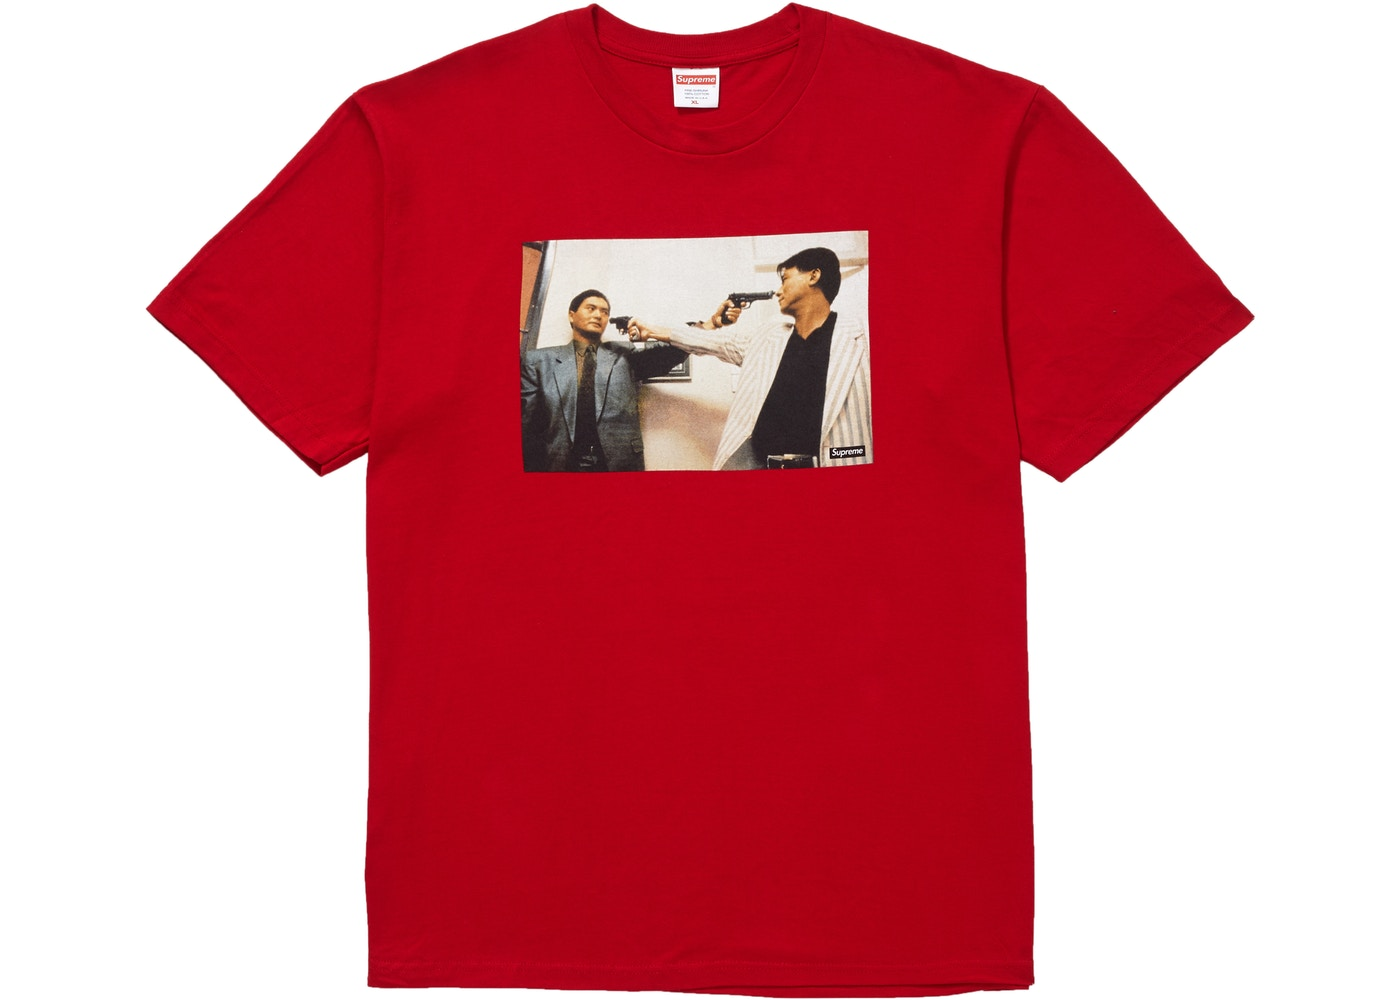 91263bf4 Size: XL. View All Bids. Supreme The Killer Trust Tee Red. The Killer Trust